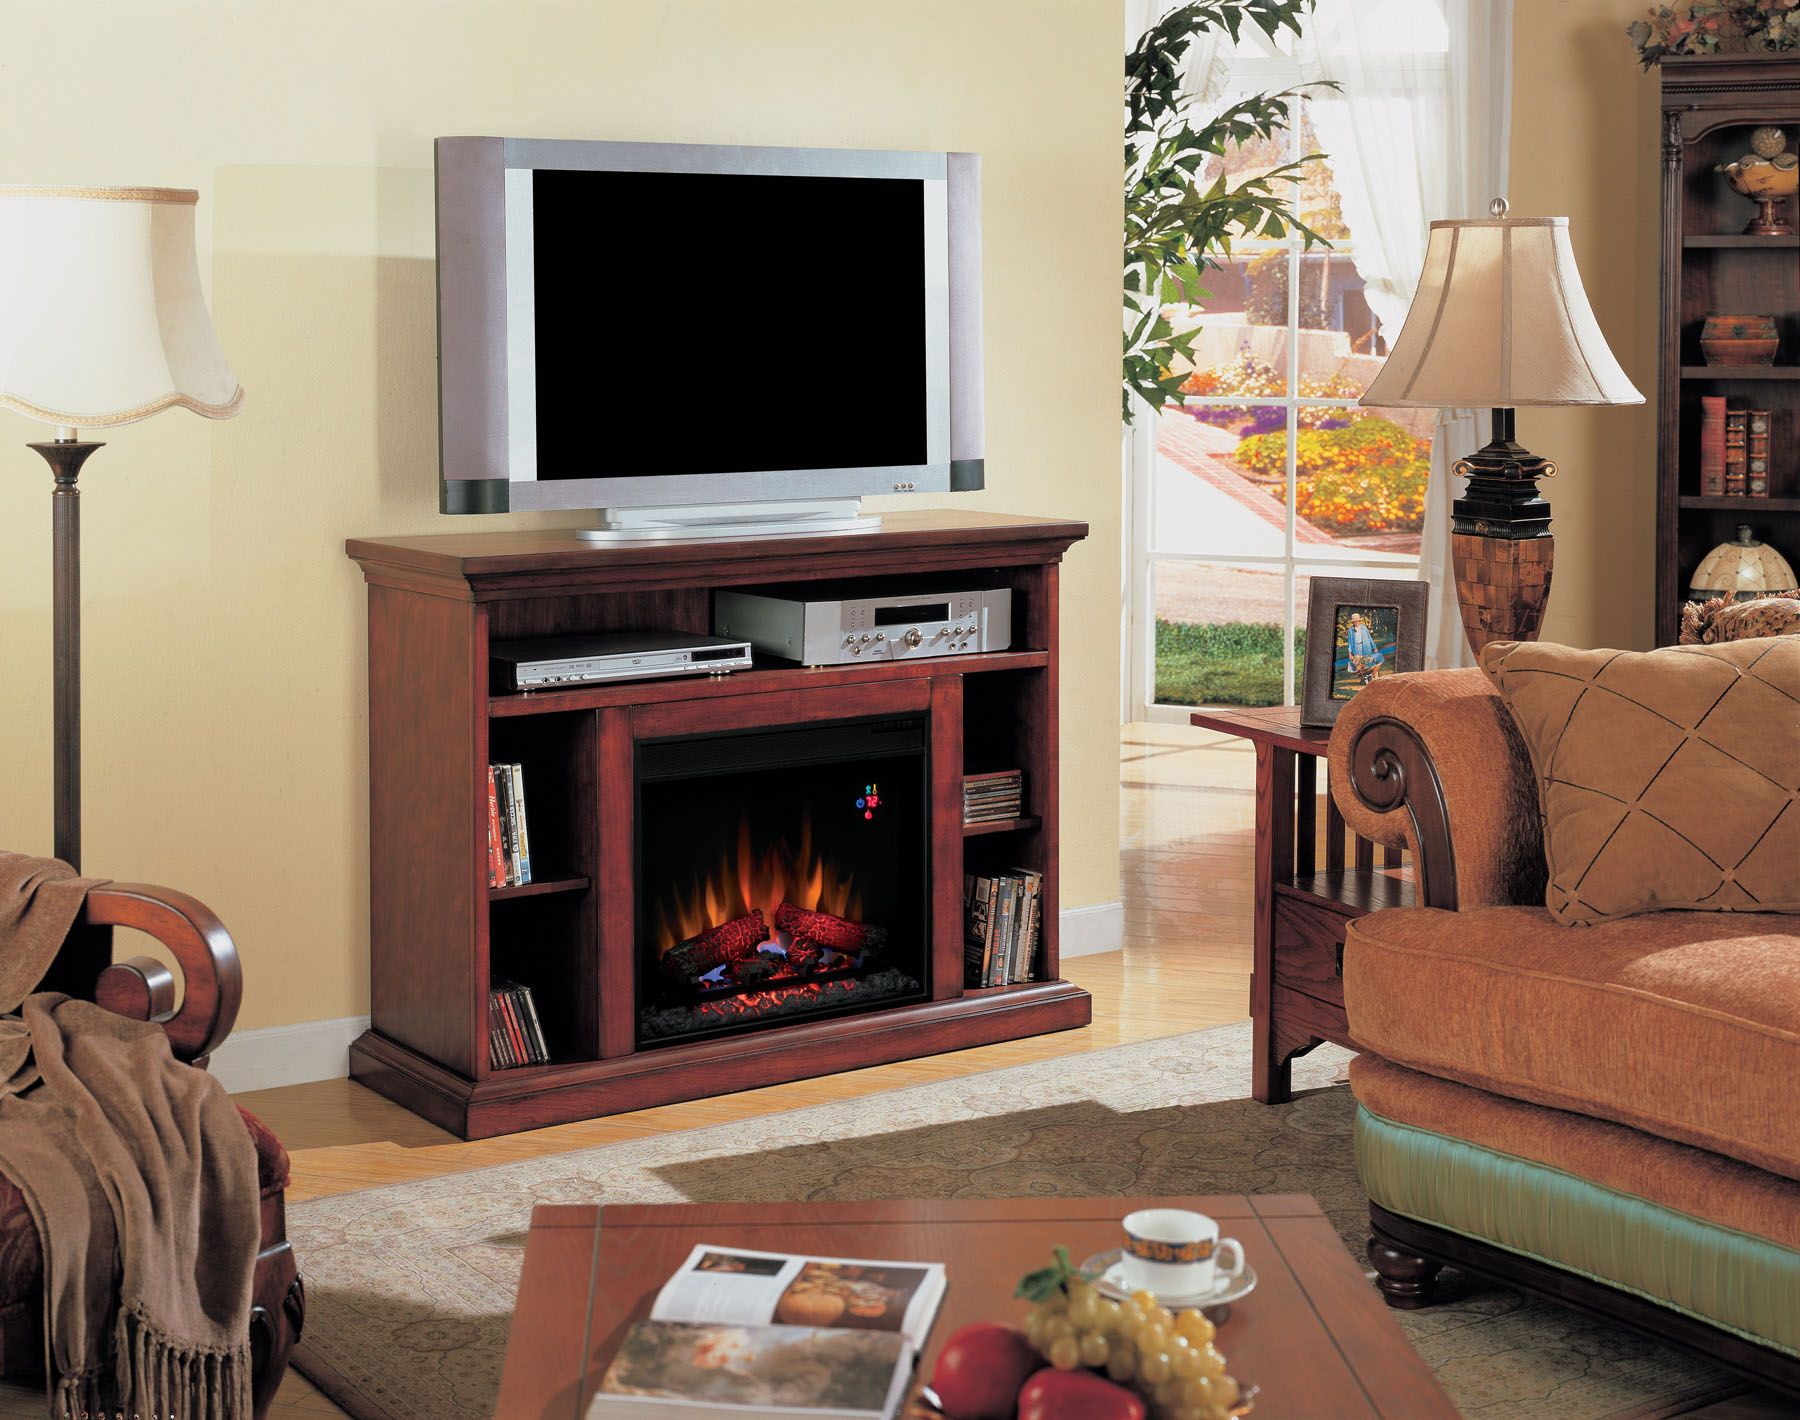 Montgomery 26in electric fireplace and tv stand cherry 26mm2490 c233 - Find This Pin And More On Classicflame Electric Fireplace Tv Stands